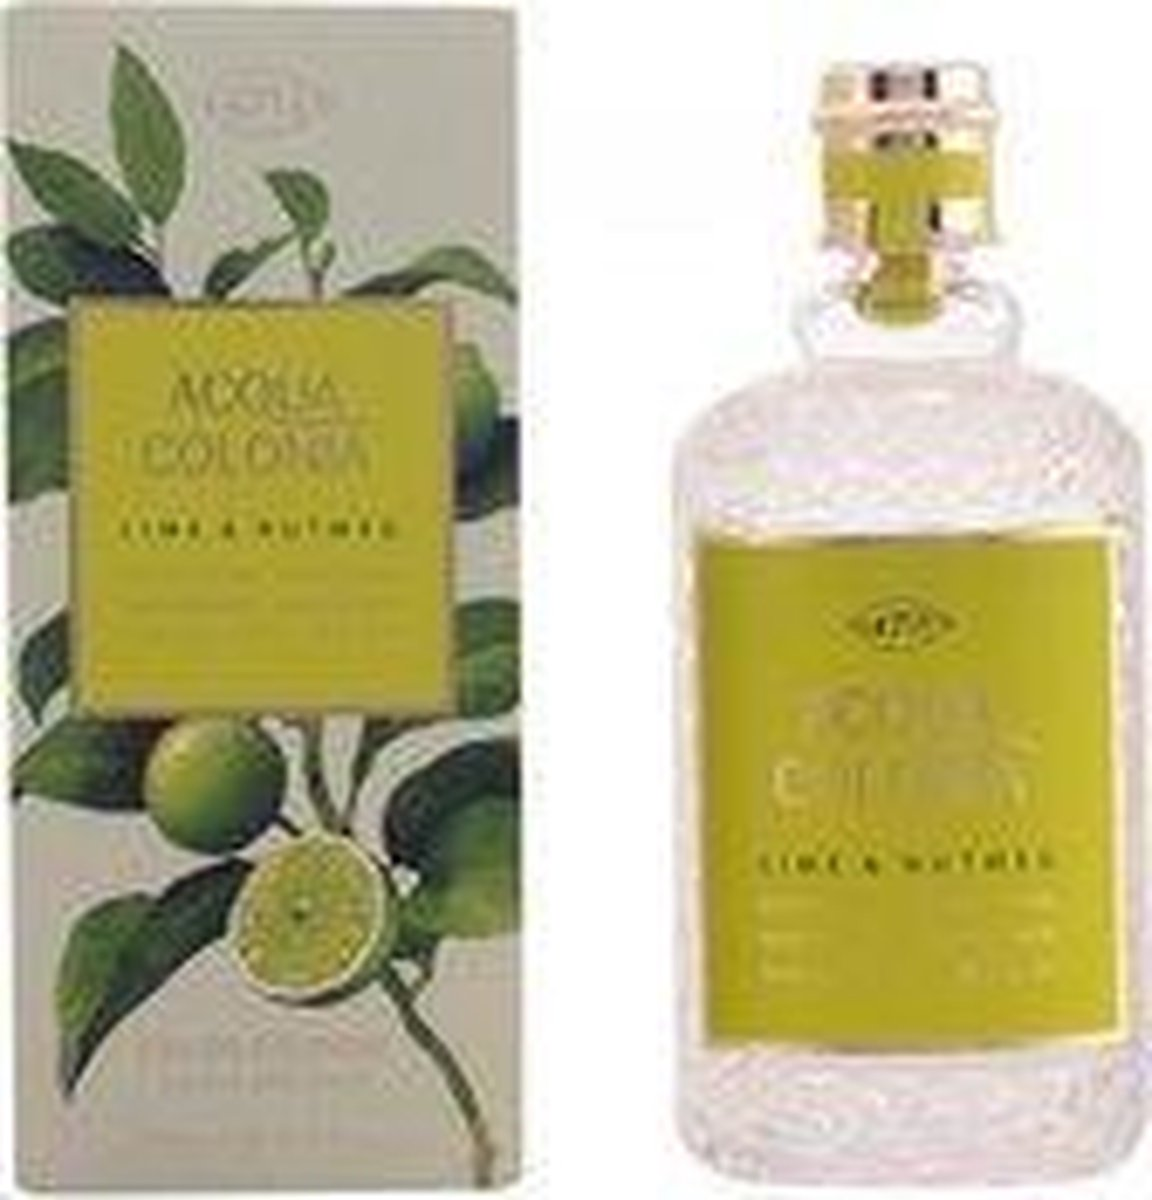 4711 Acqua Colonia Lime & Nutmeg - 50 ml - eau de cologne spray - unisex parfum